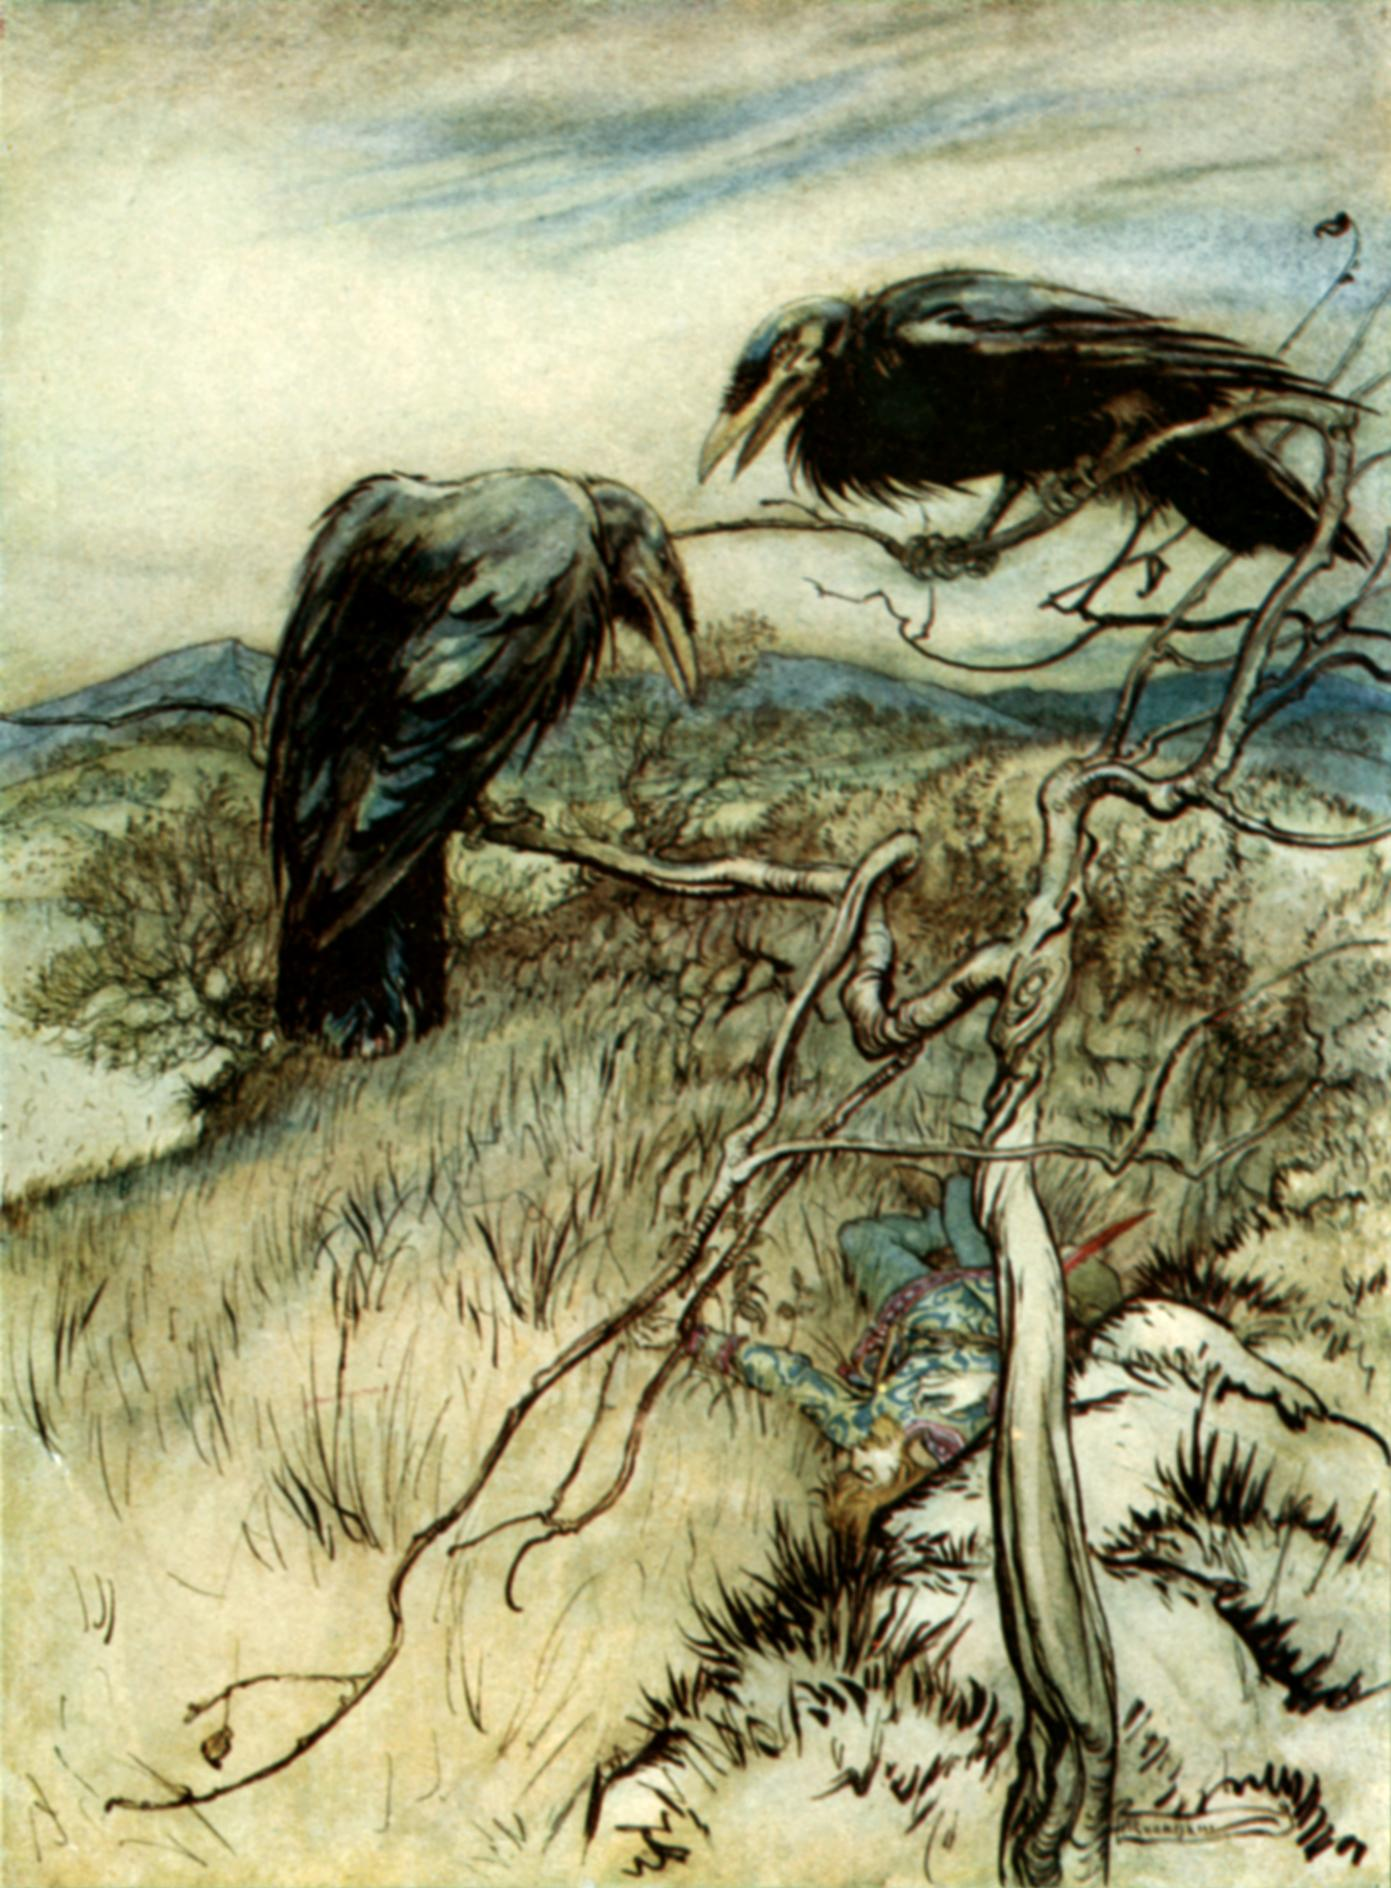 OMG: Crows, picture by Arthur Rackham, uploaded on Wikimedia